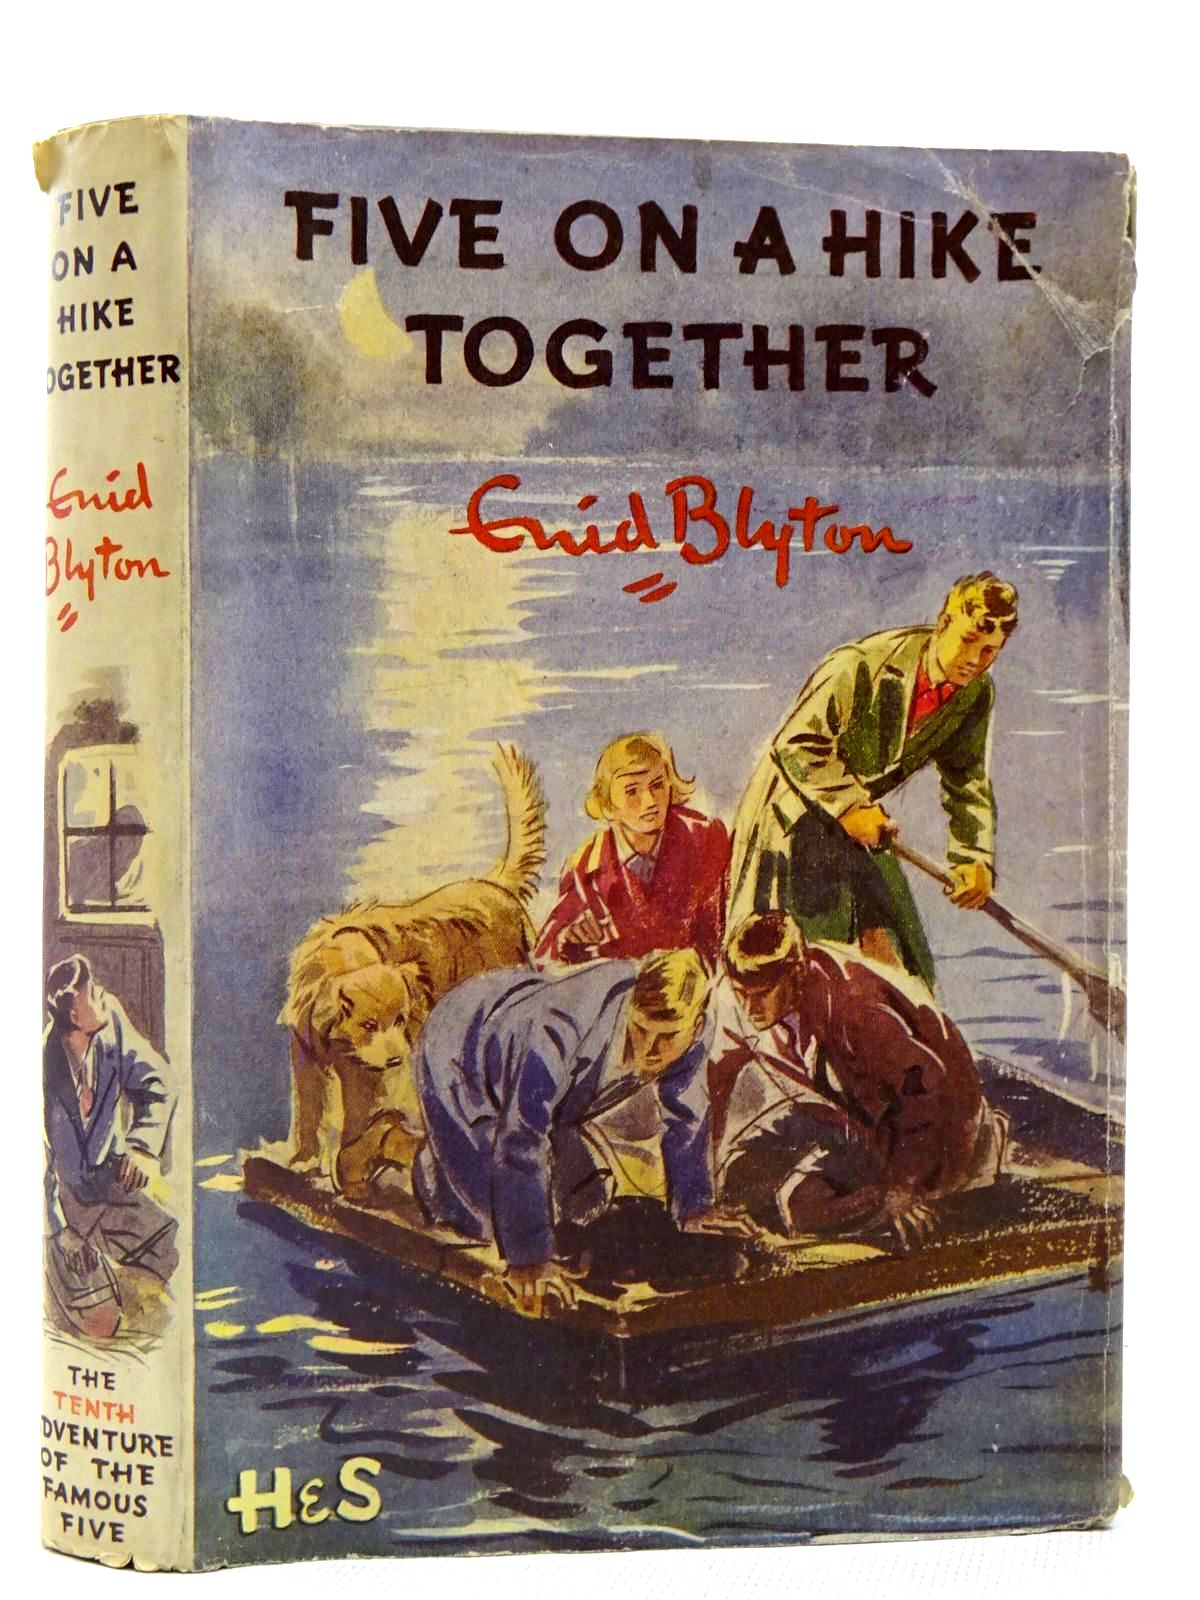 Cover of FIVE ON A HIKE TOGETHER by Enid Blyton